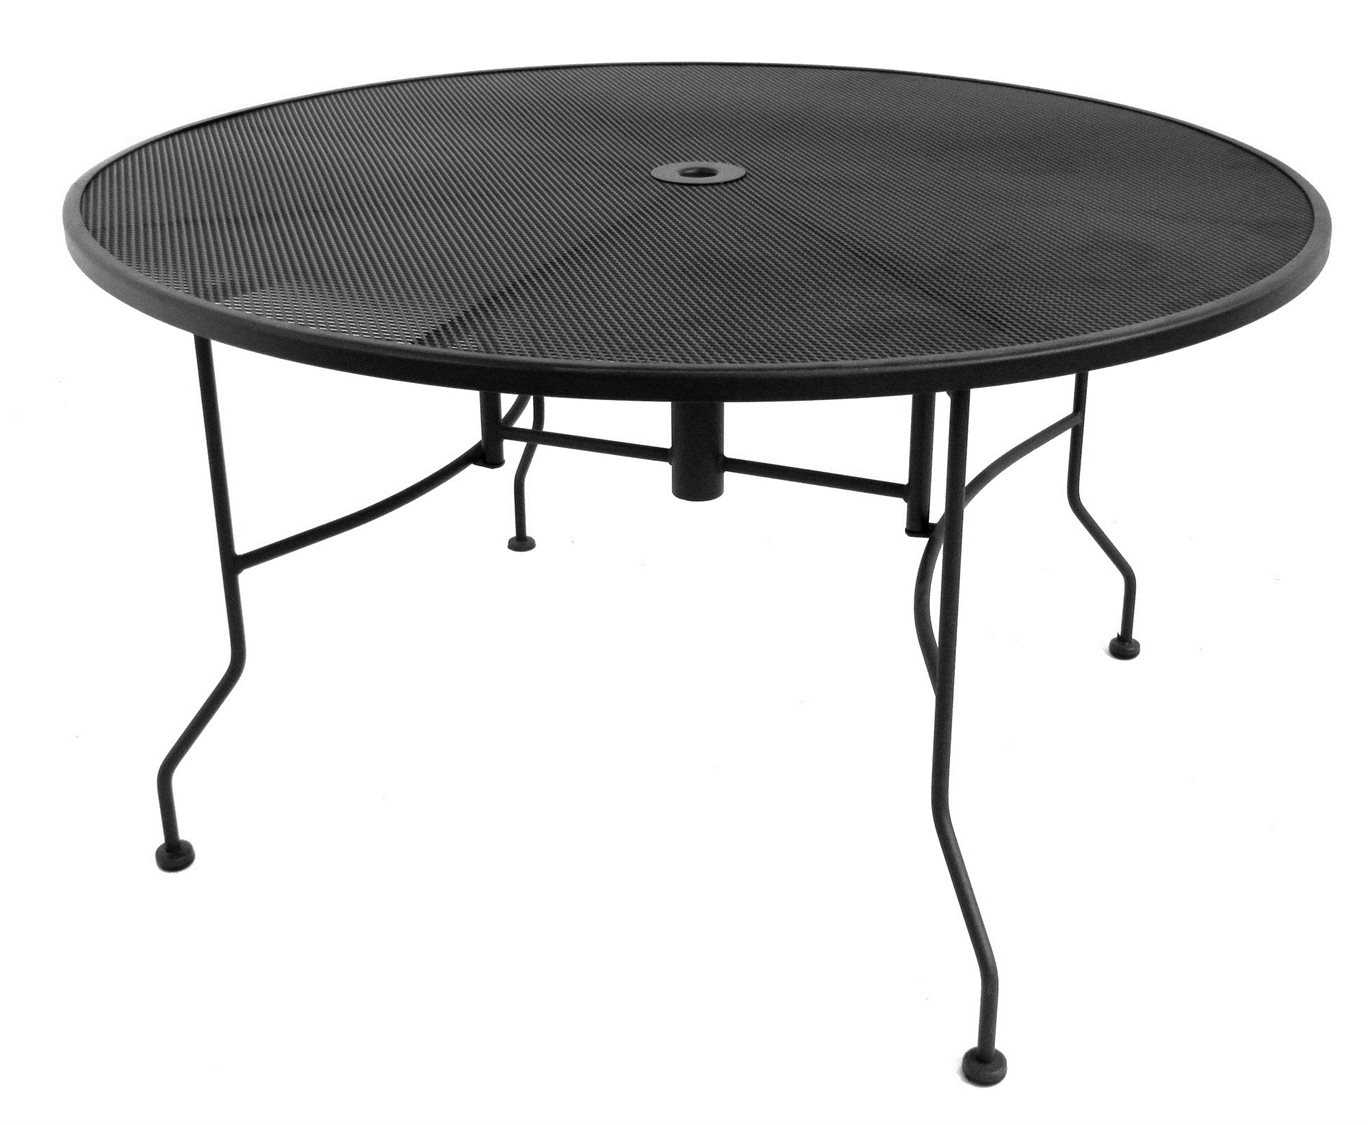 Meadowcraft Wrought Iron 60 Round Micro Mesh Dining Table 3096000 01